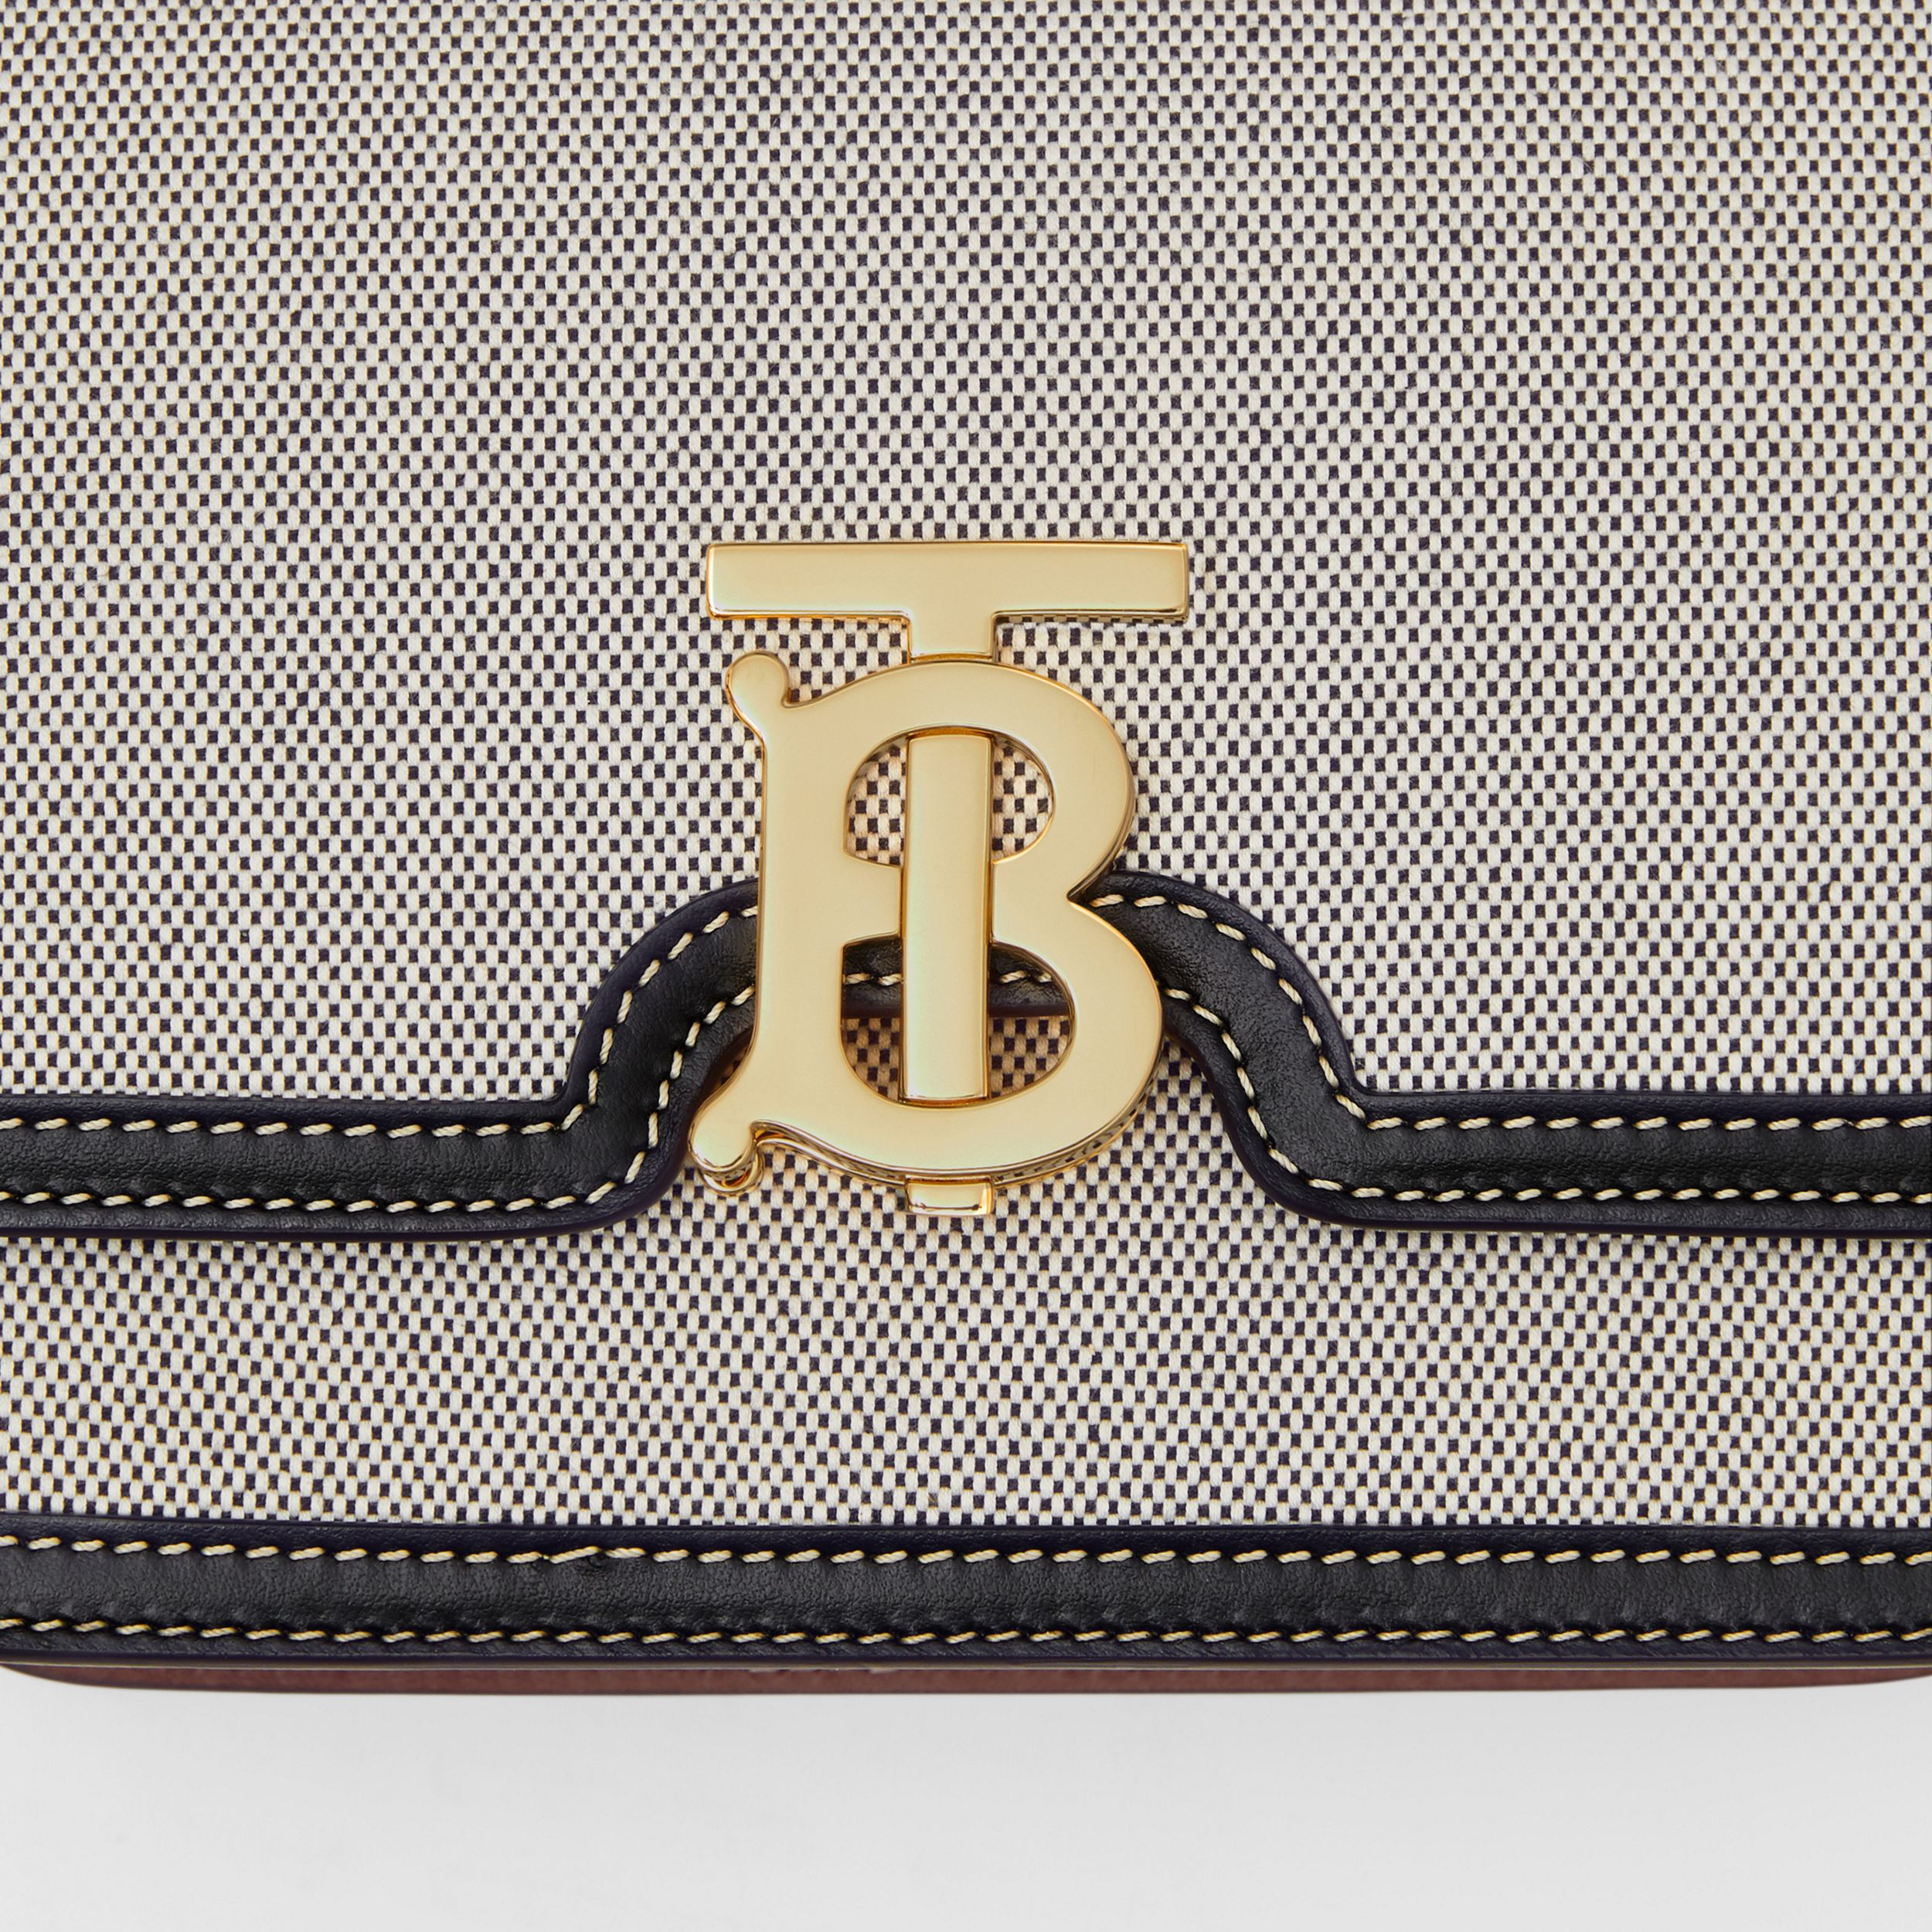 Small Tri-tone Canvas and Leather TB Bag in Black/tan - Women | Burberry - 2